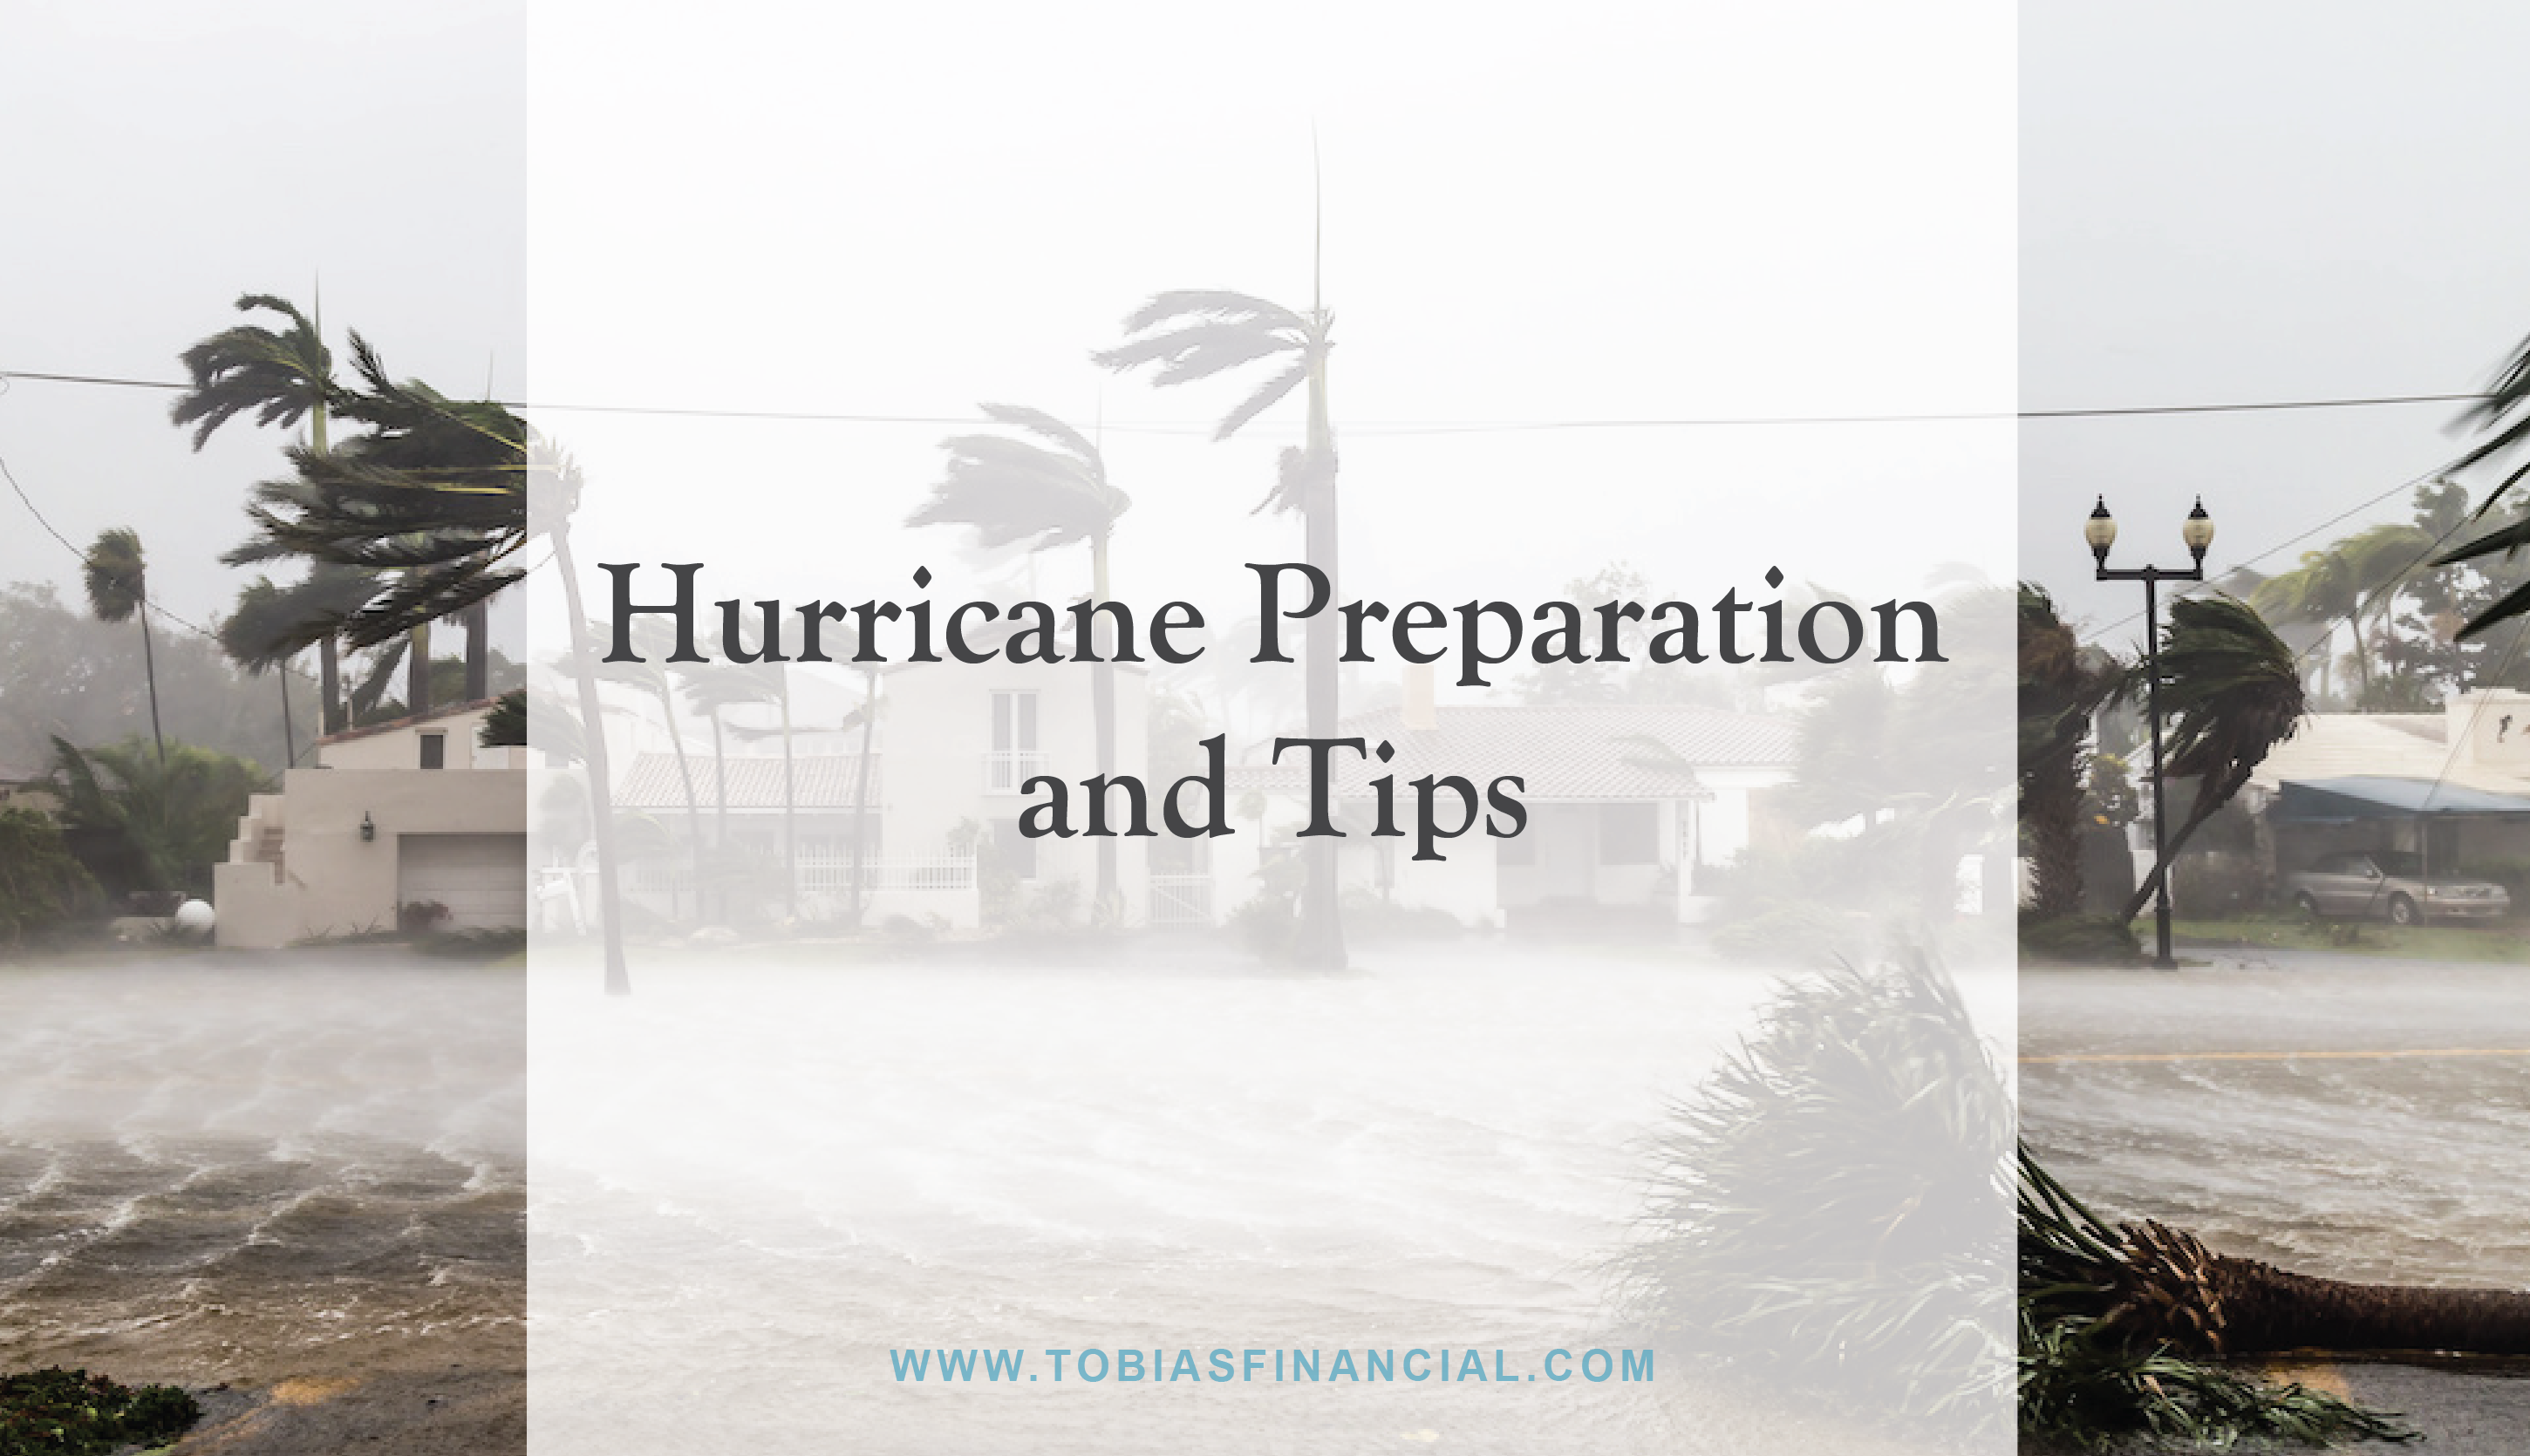 Hurricane Preparation and Tips